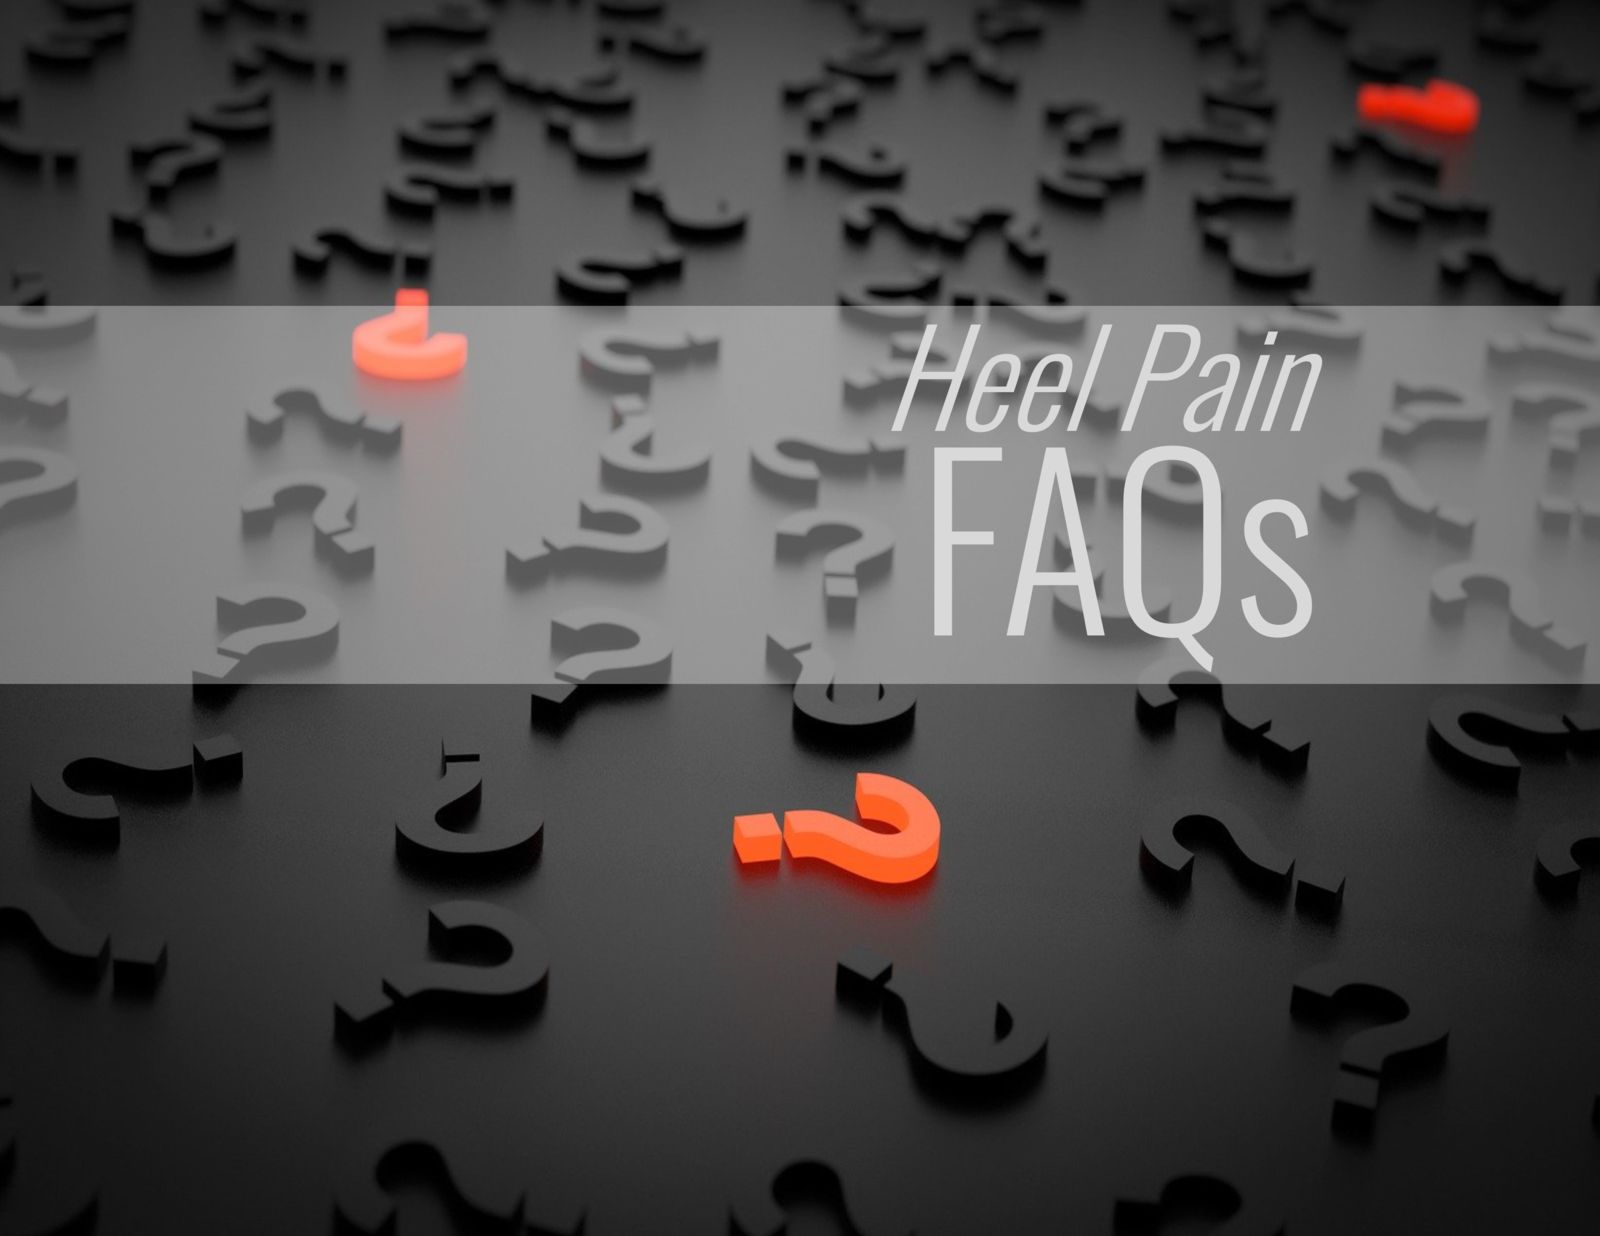 questions marks and the words: Heel Pain Faqs